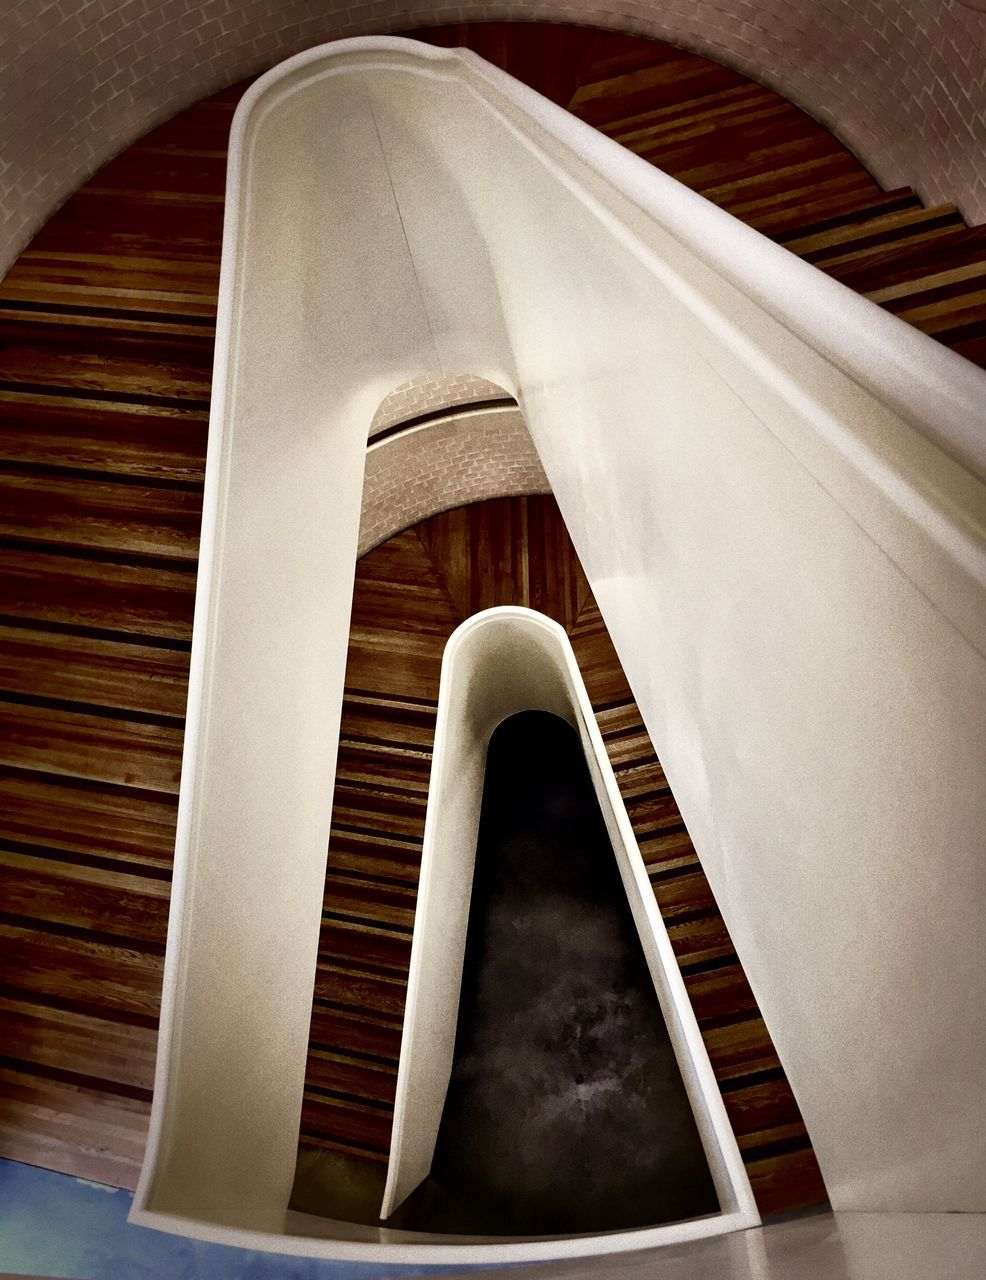 steps and staircases, staircase, steps, architecture, built structure, no people, indoors, stairway, hand rail, day, close-up